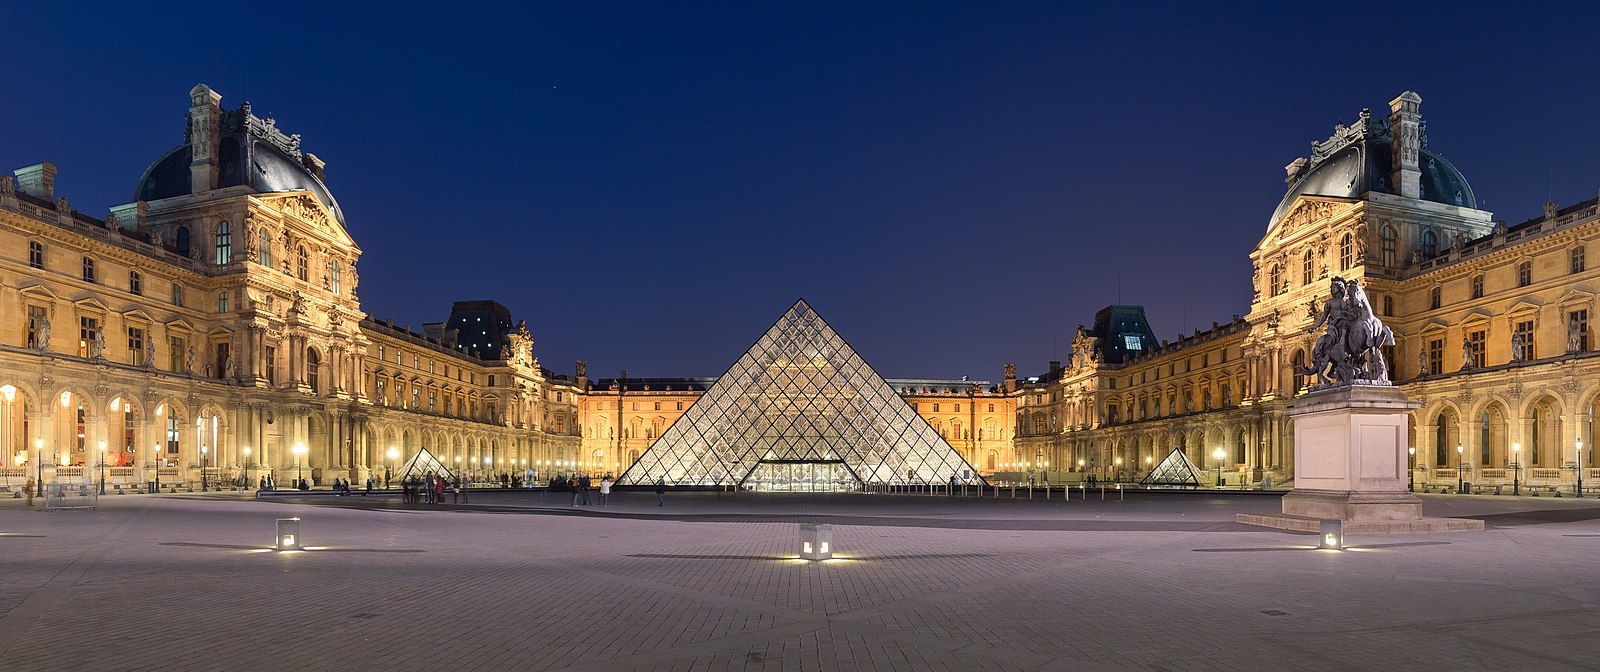 The Courtyard of the Louvre Museum at night. Louvre Museum Wikimedia Commons.jpg